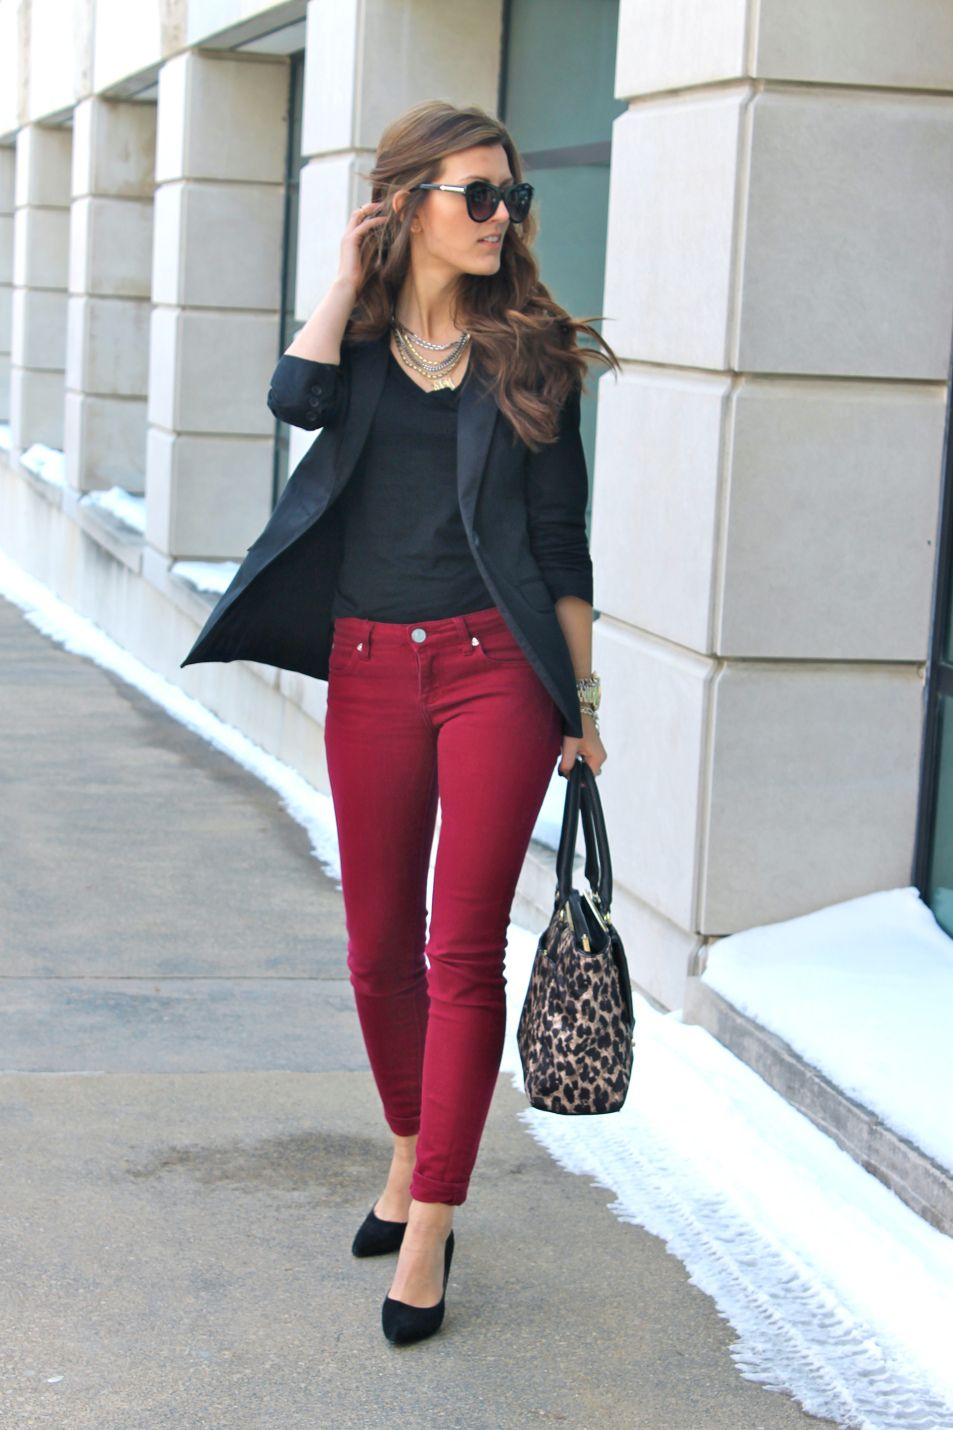 Pin by Deirdre Bannon on Wear it Girl   Fashion, Blazer outfits, Outfits 13ce7c2cde